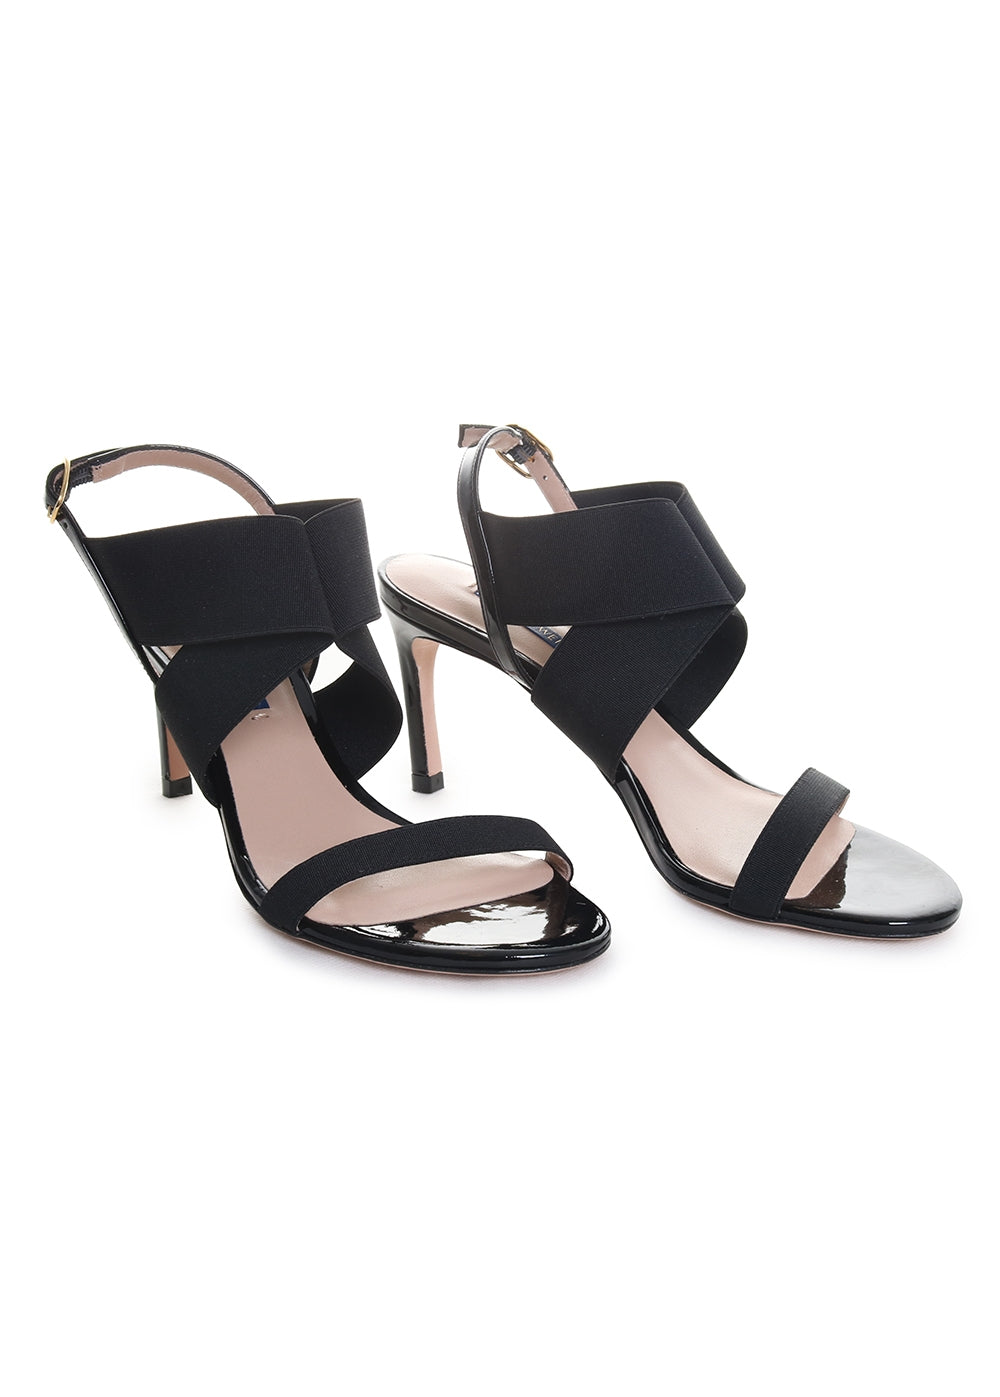 Alana Leather Open Toe Heeled Sandals